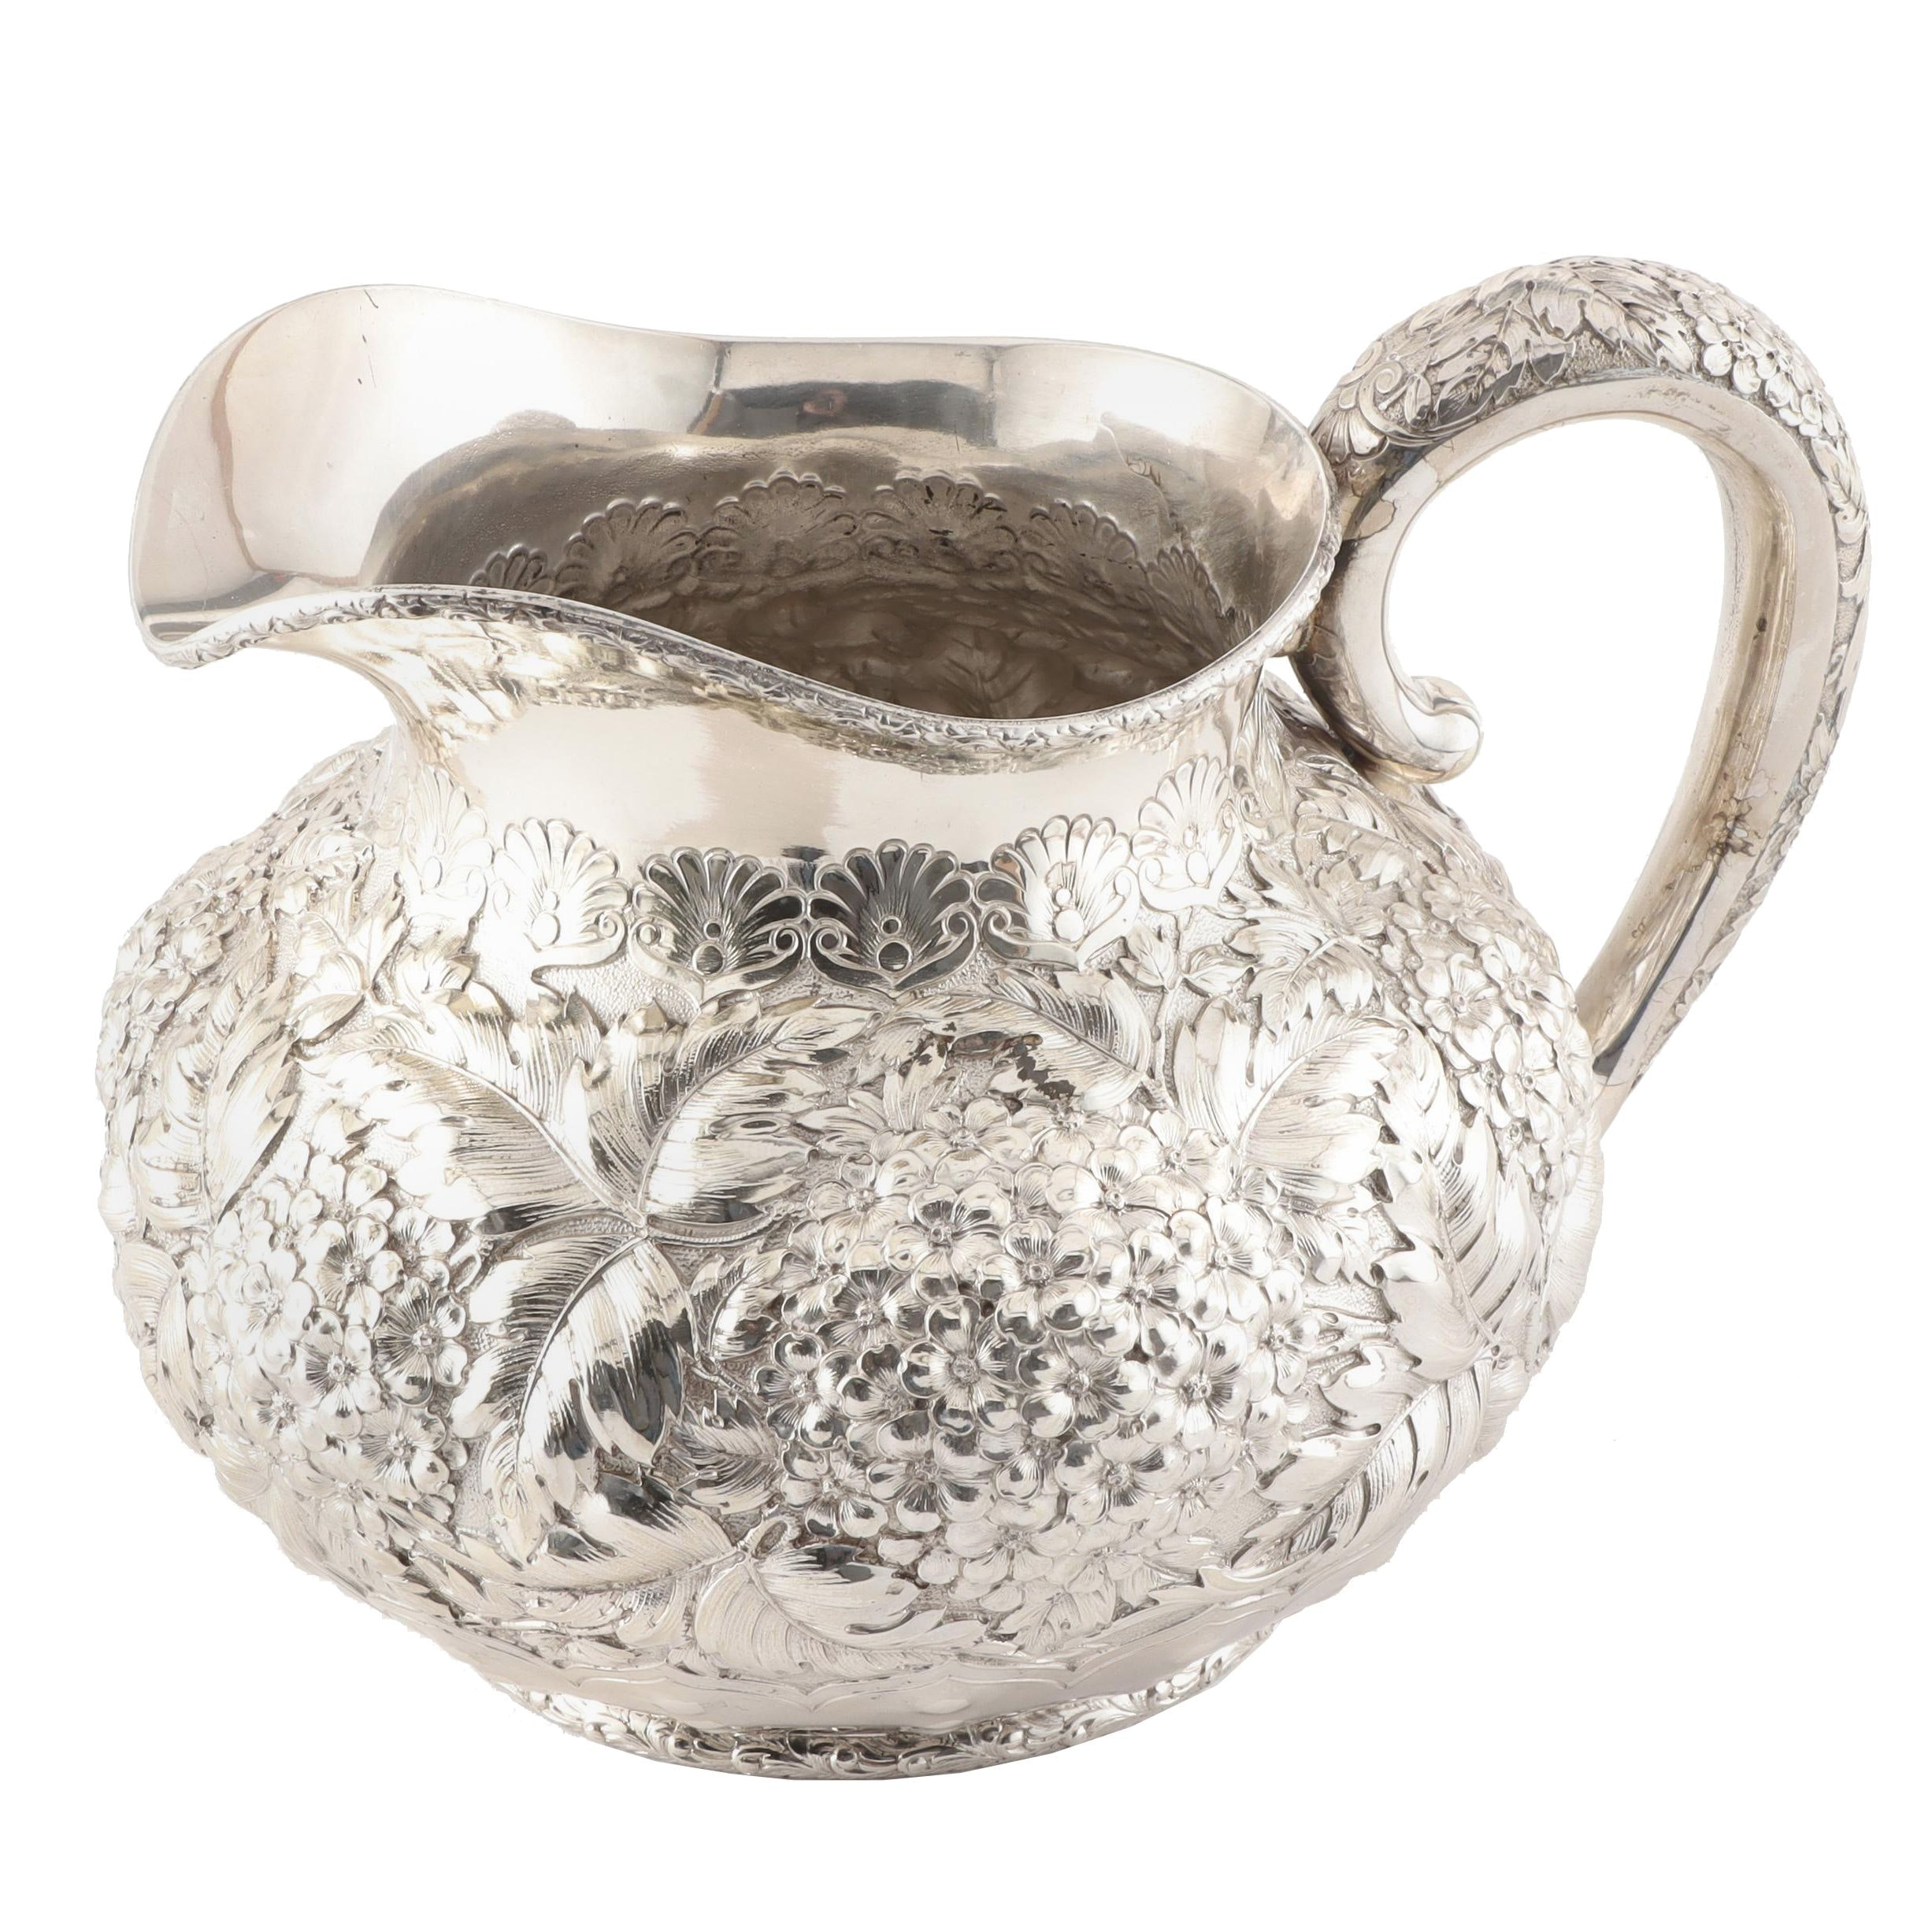 Dominick and Haff Sterling Silver Repoussé Water Pitcher, circa 1900